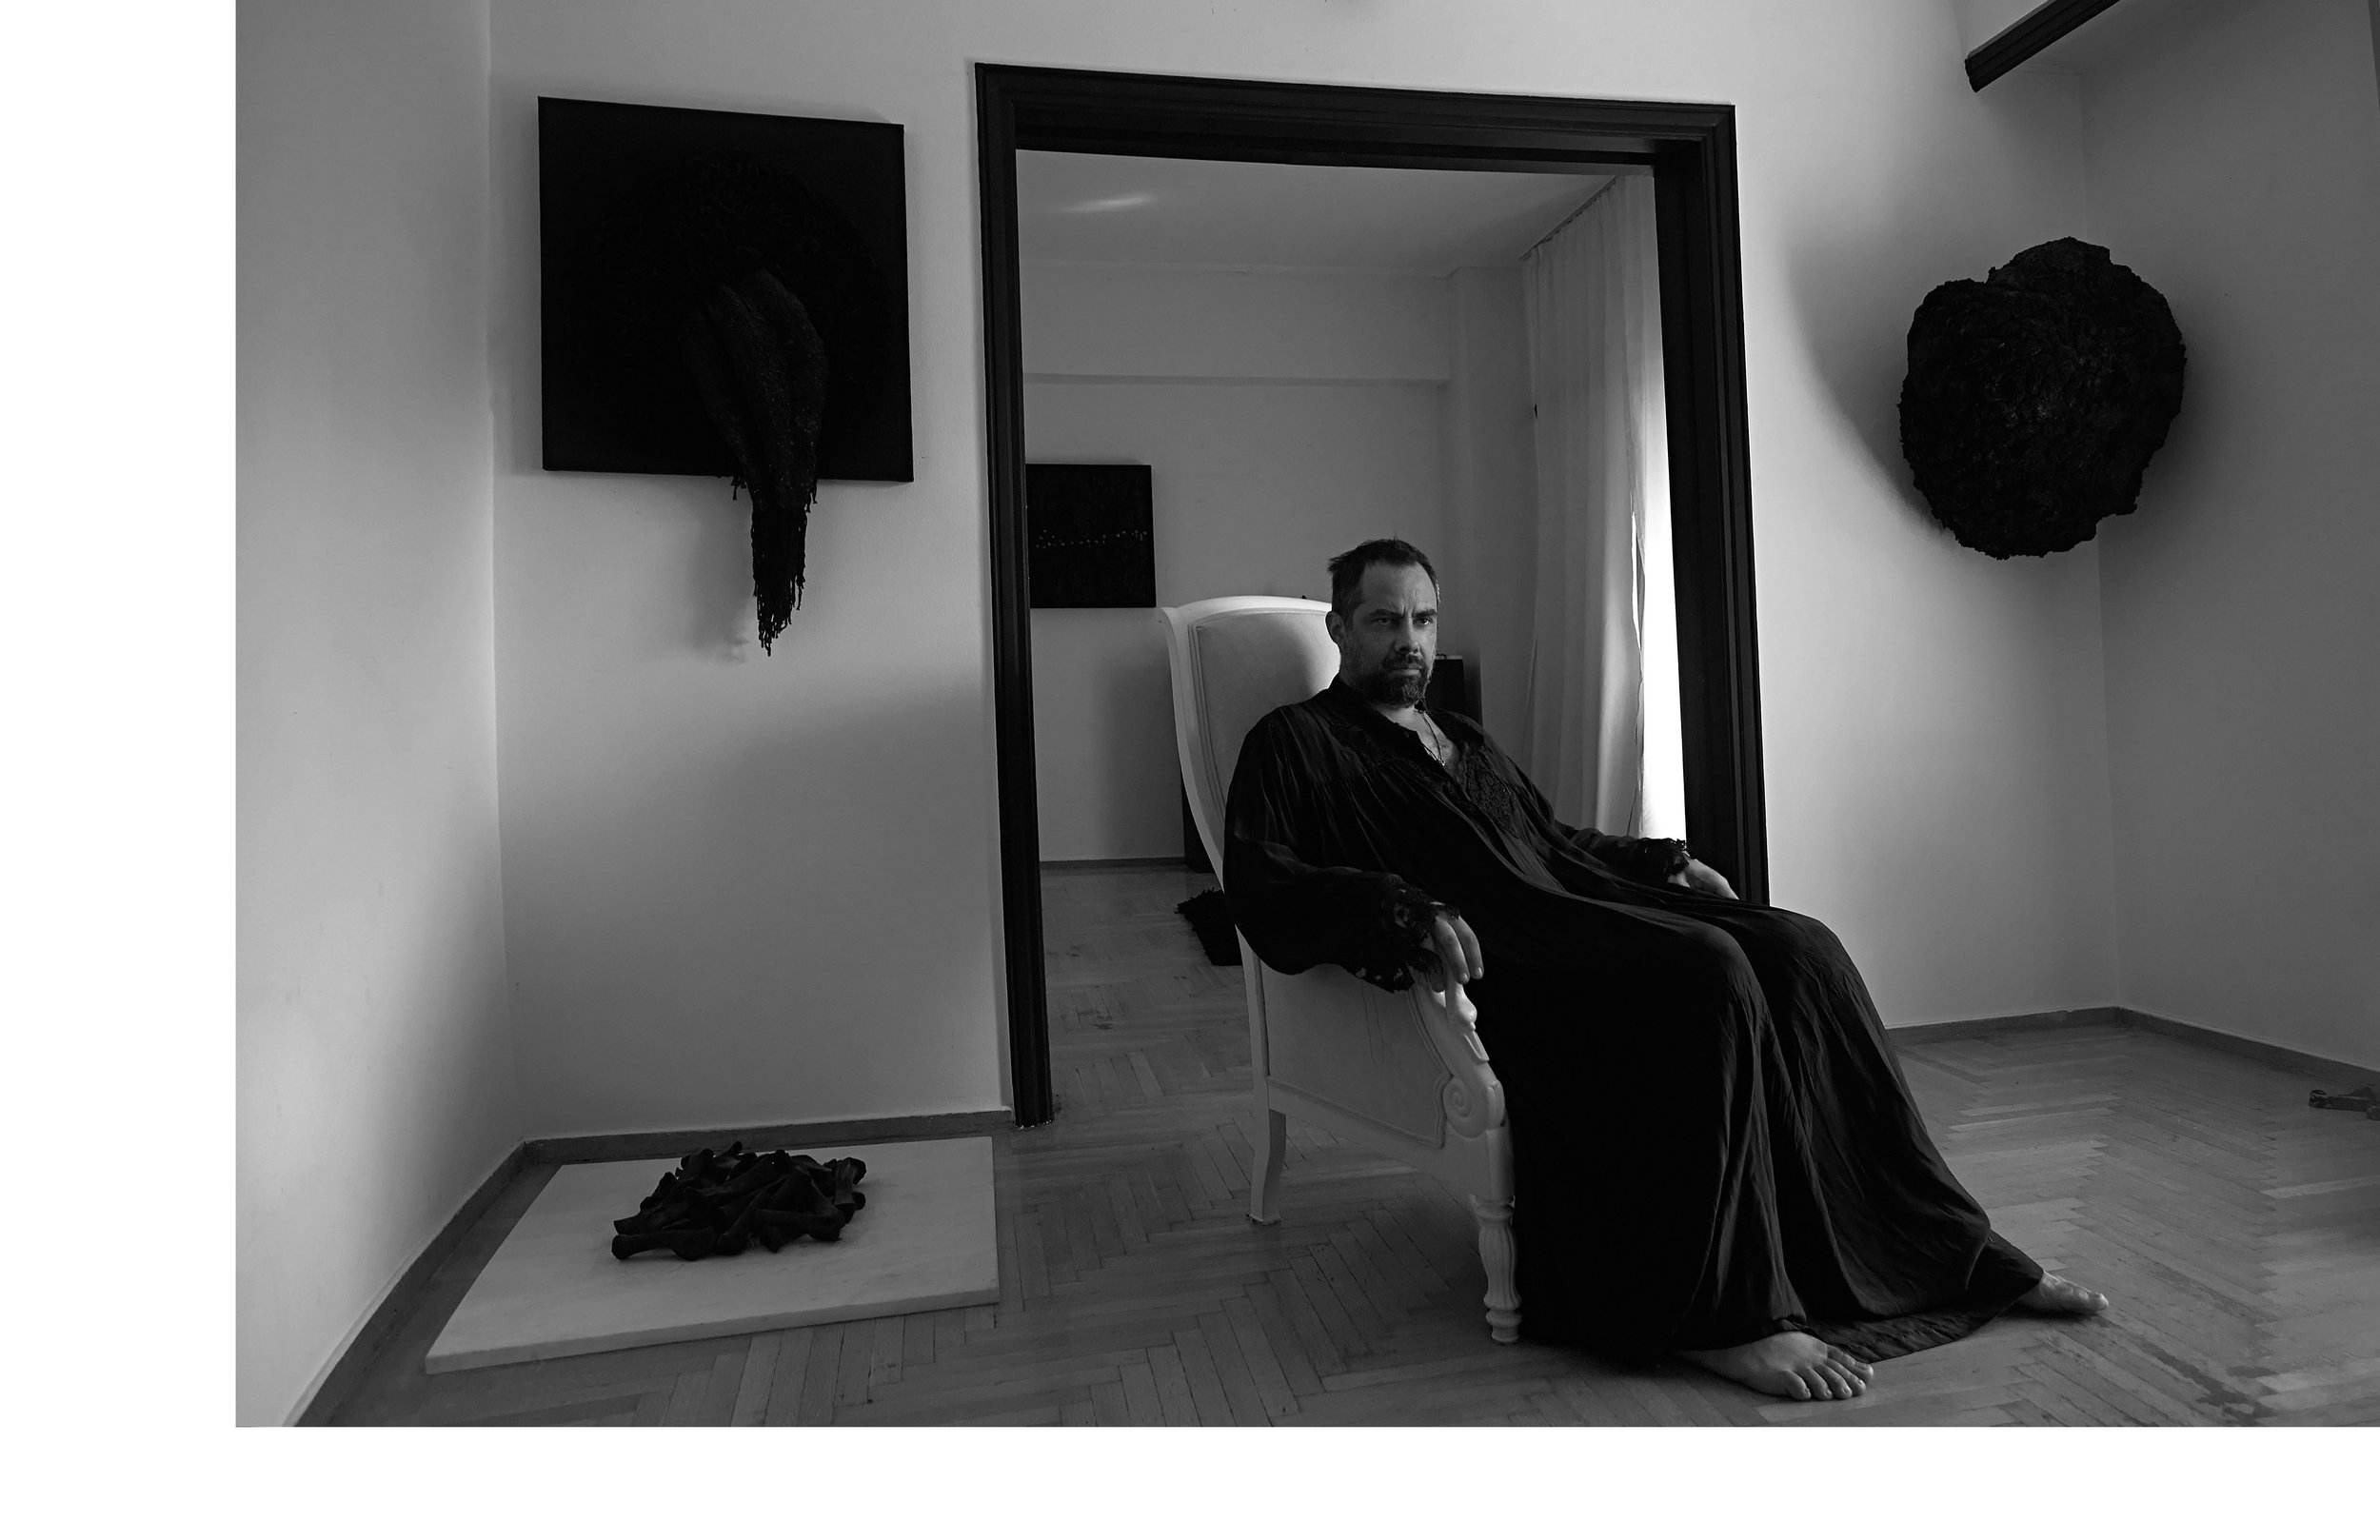 Conceptual artist Thanos Kuriakidis aka Blind Adam photographed by Christos Karantzolas at his apartment in Athens on 25 August 2018.